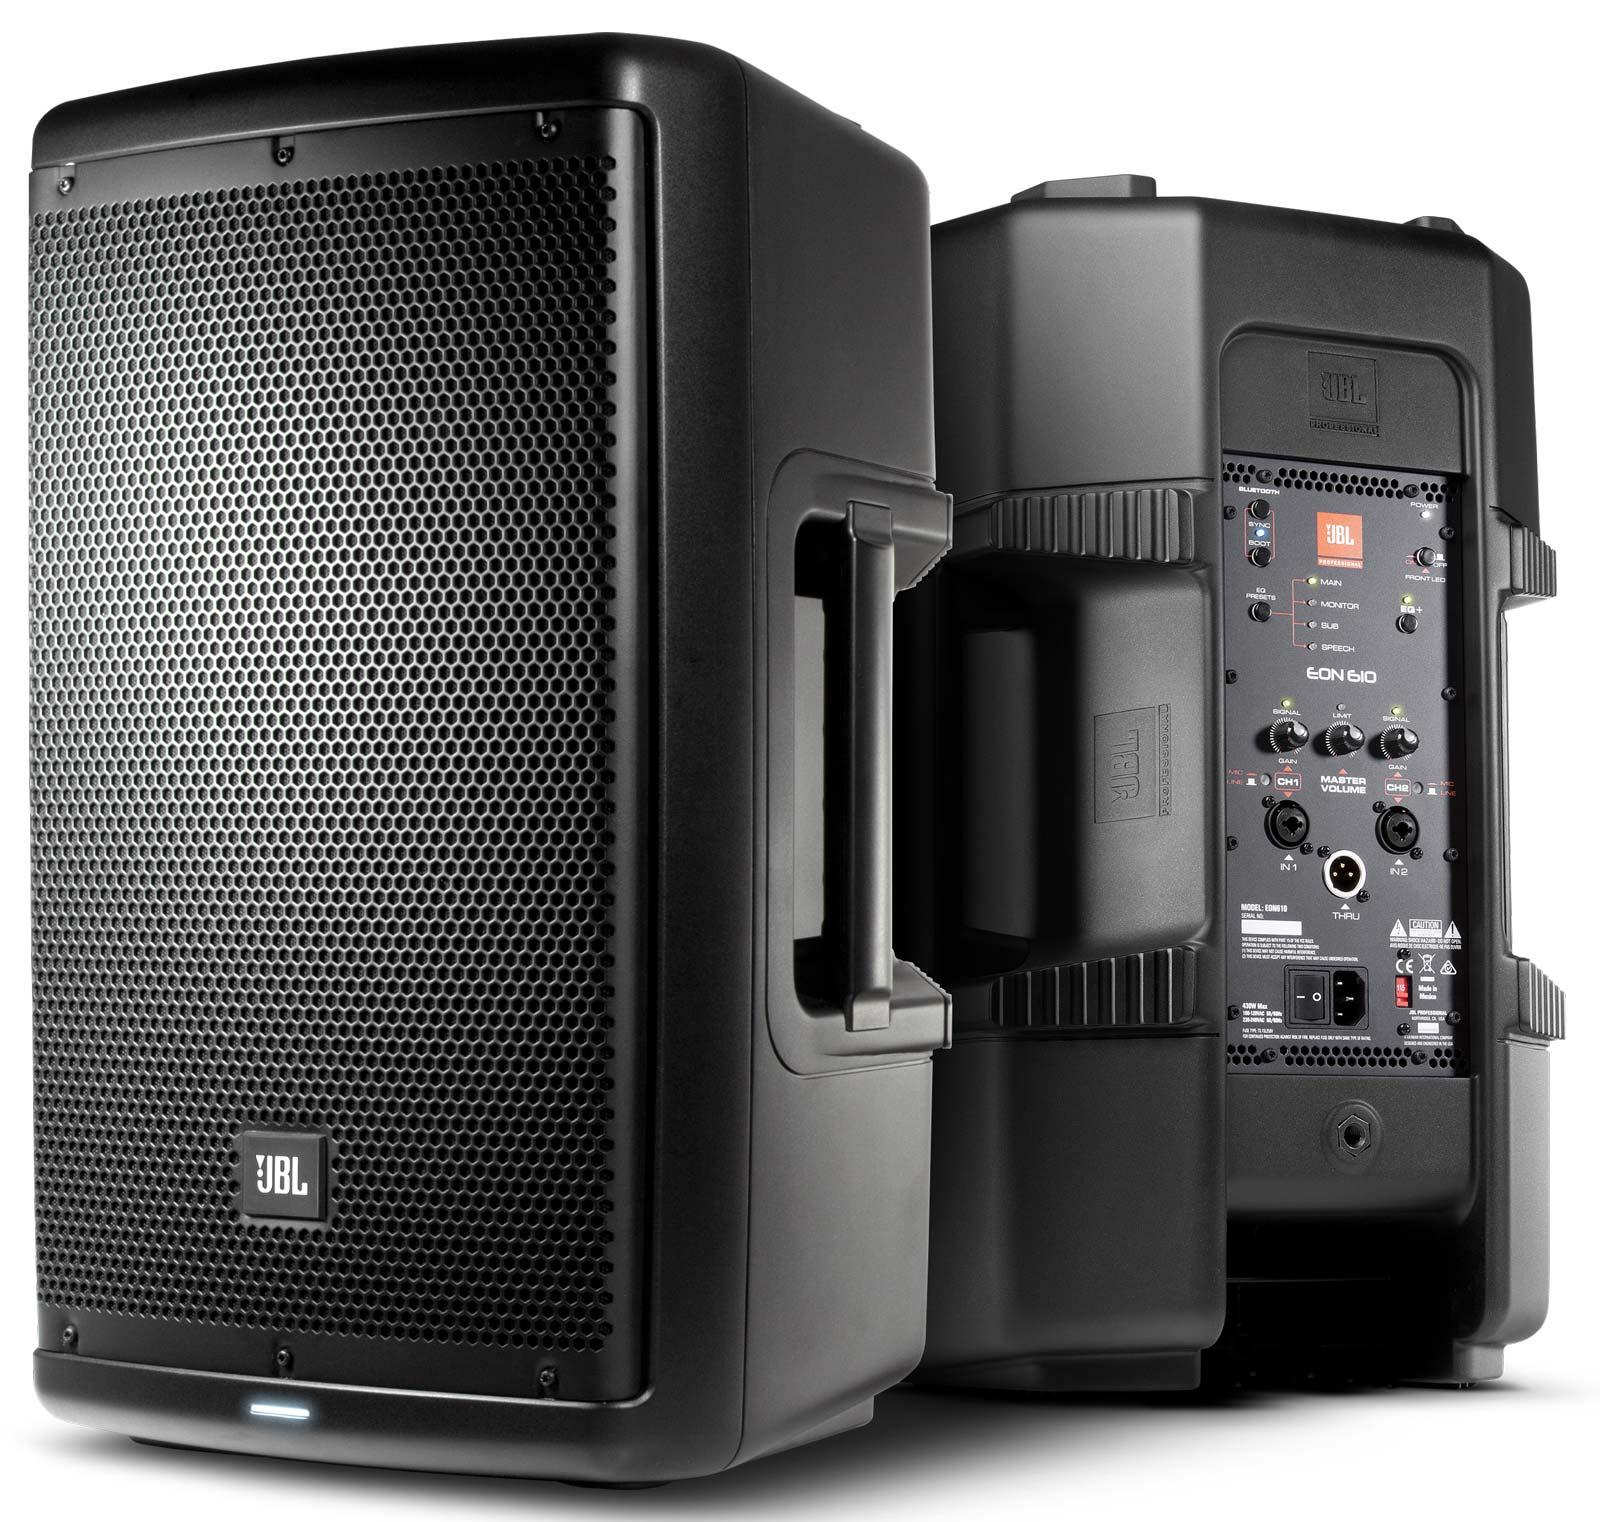 jbl eon610 10 two way multipurpose self powered loudspeaker agiprodj. Black Bedroom Furniture Sets. Home Design Ideas